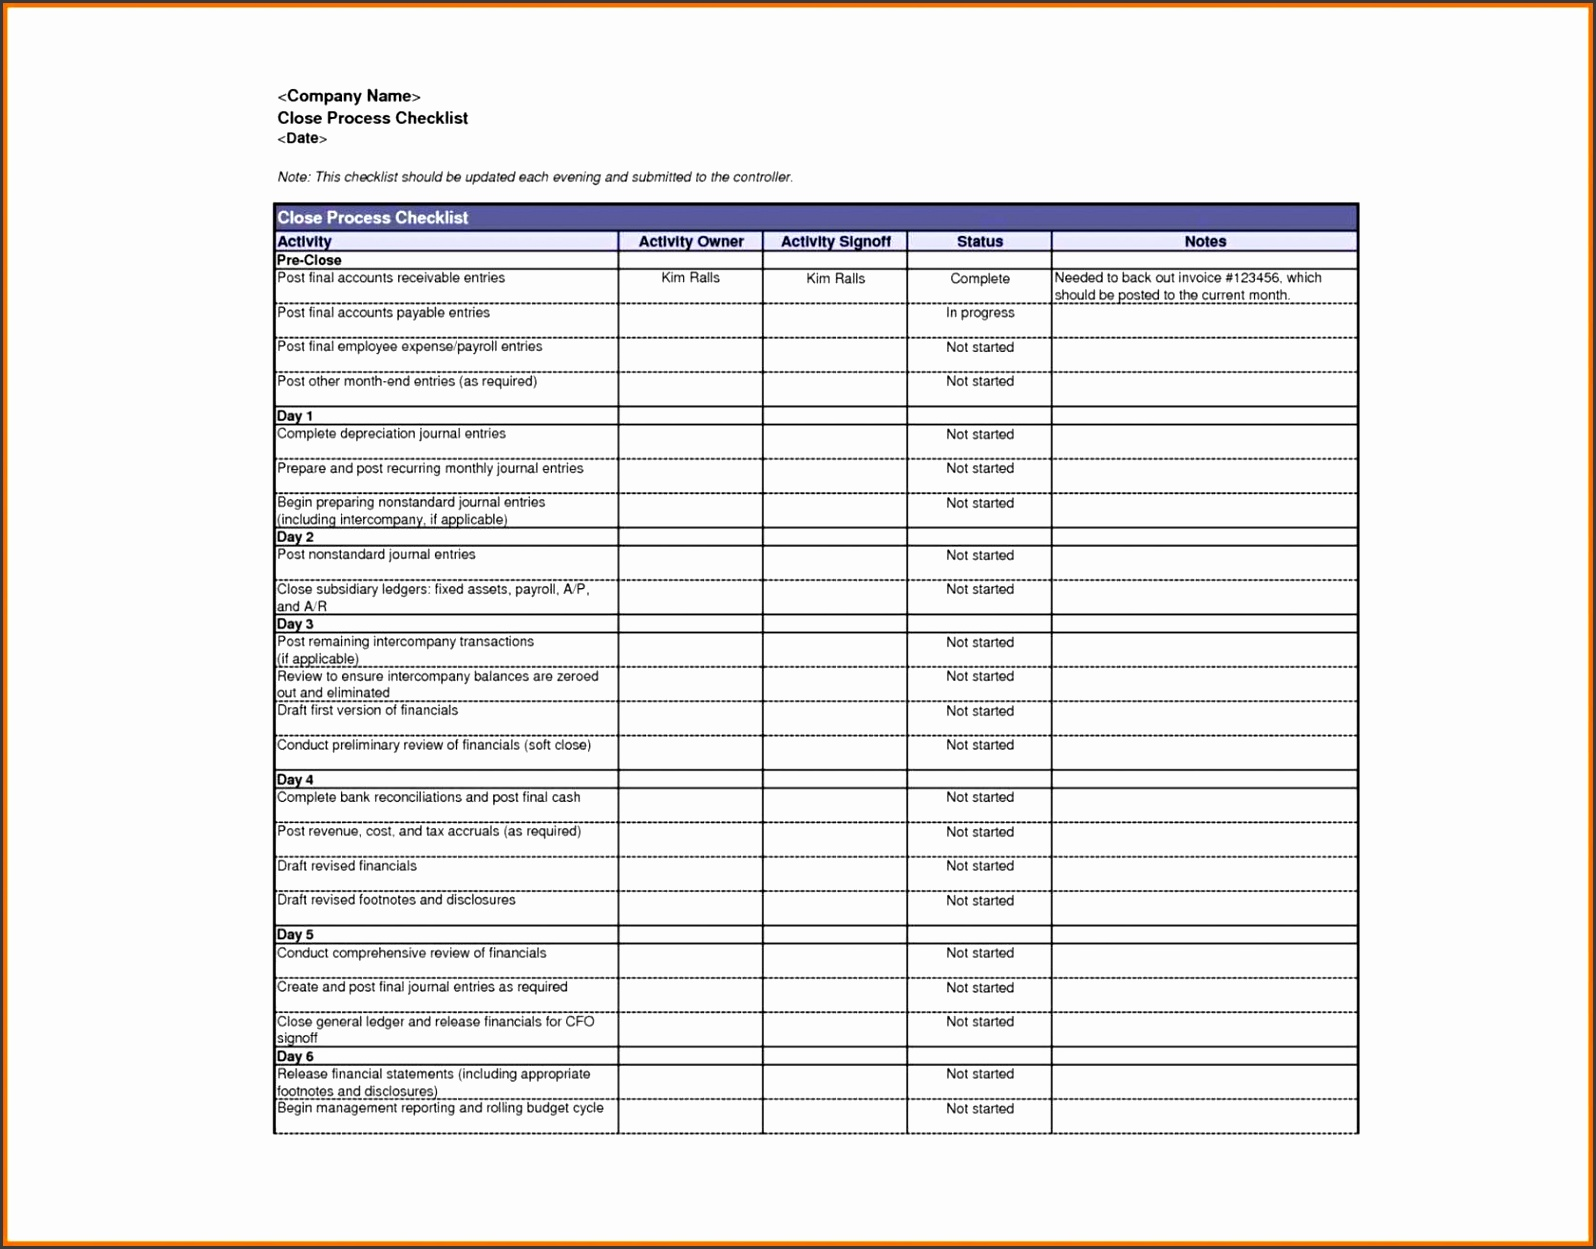 Excel Template Home Doc Word Checklist U Project Made With Microsoft fice Management Managing Outsourcing New